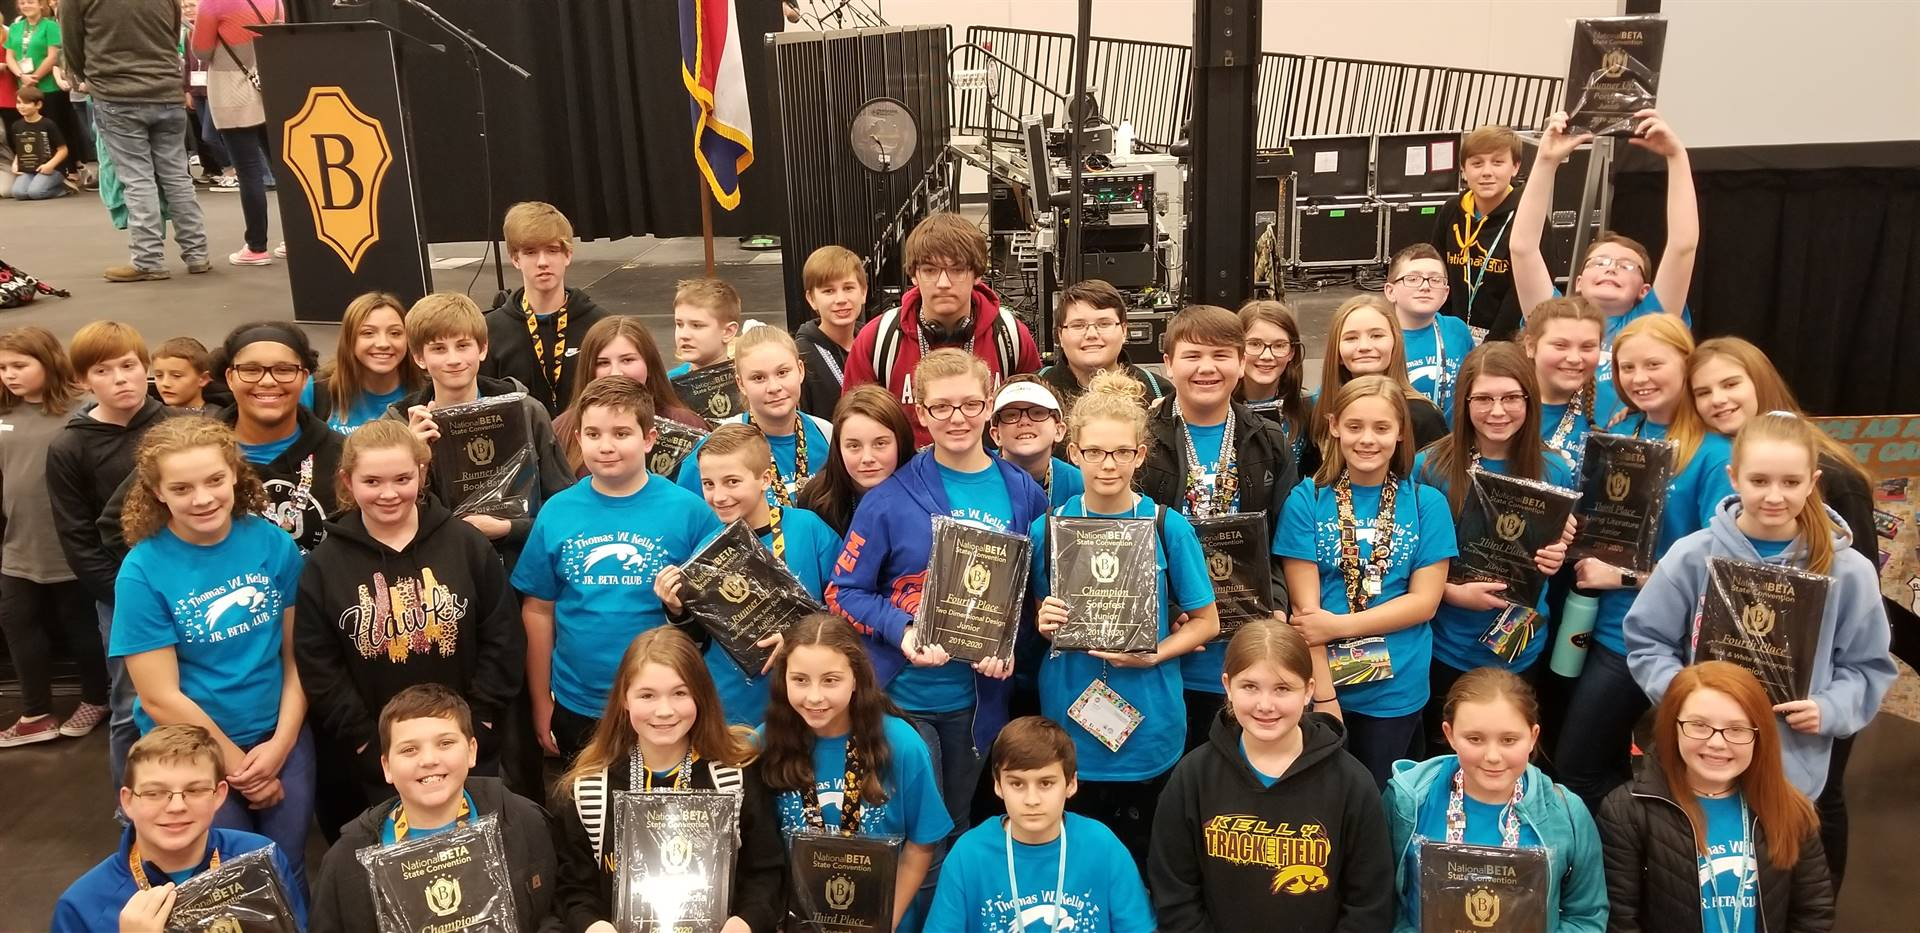 JR Beta Brings Home the Awards!